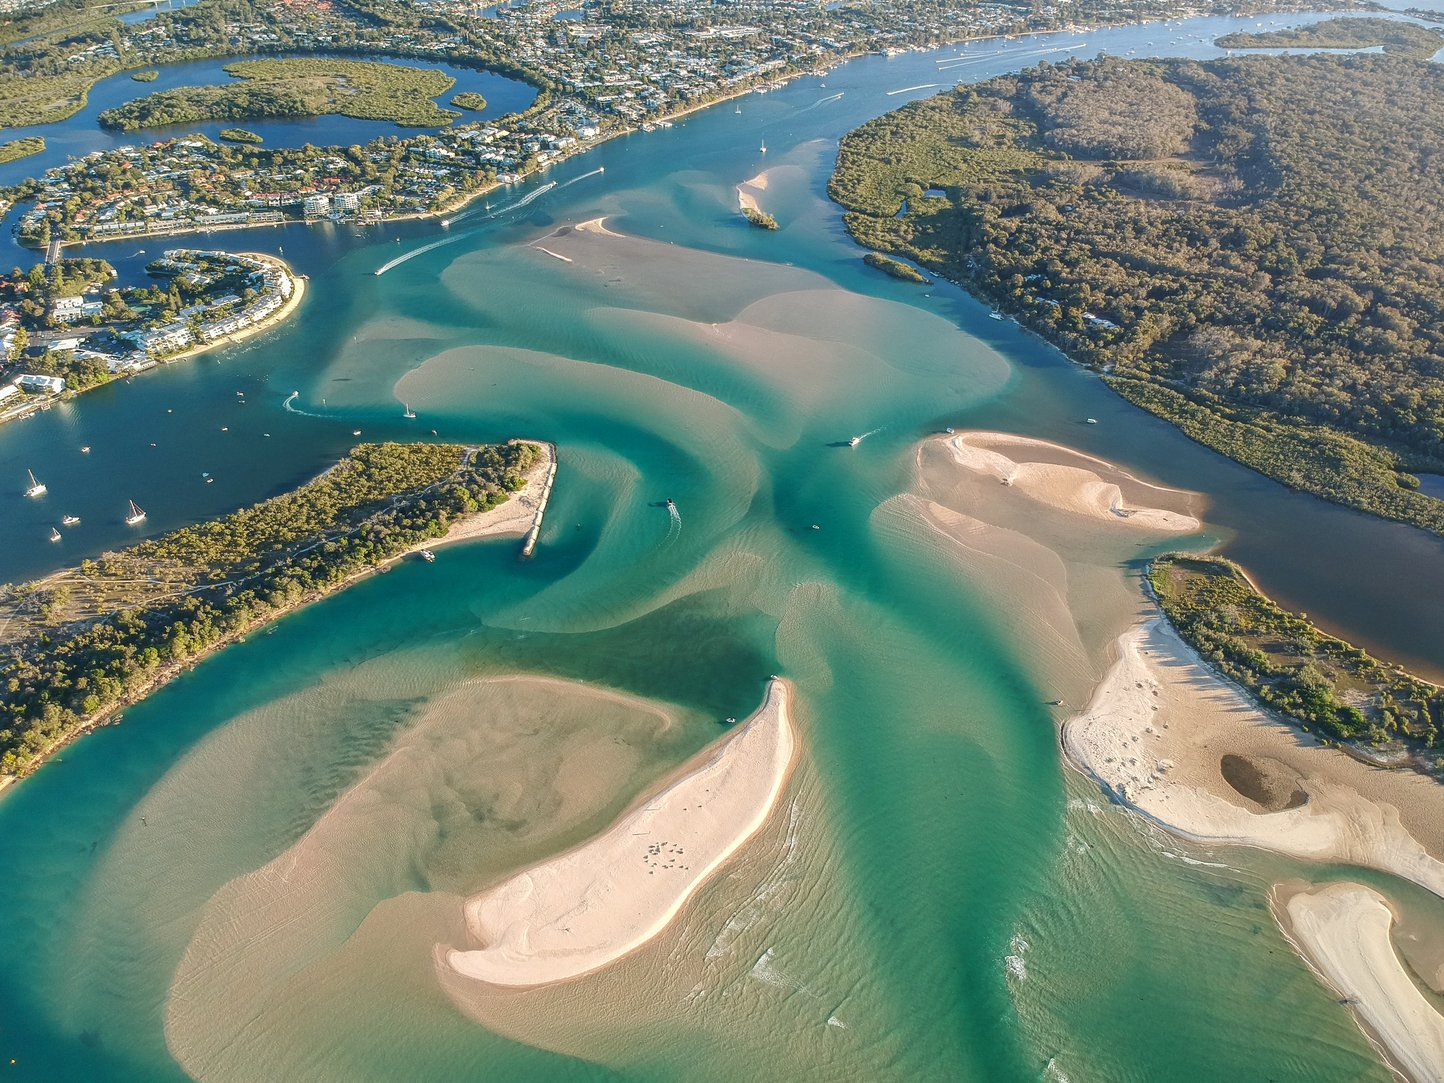 an areal view of Noosa